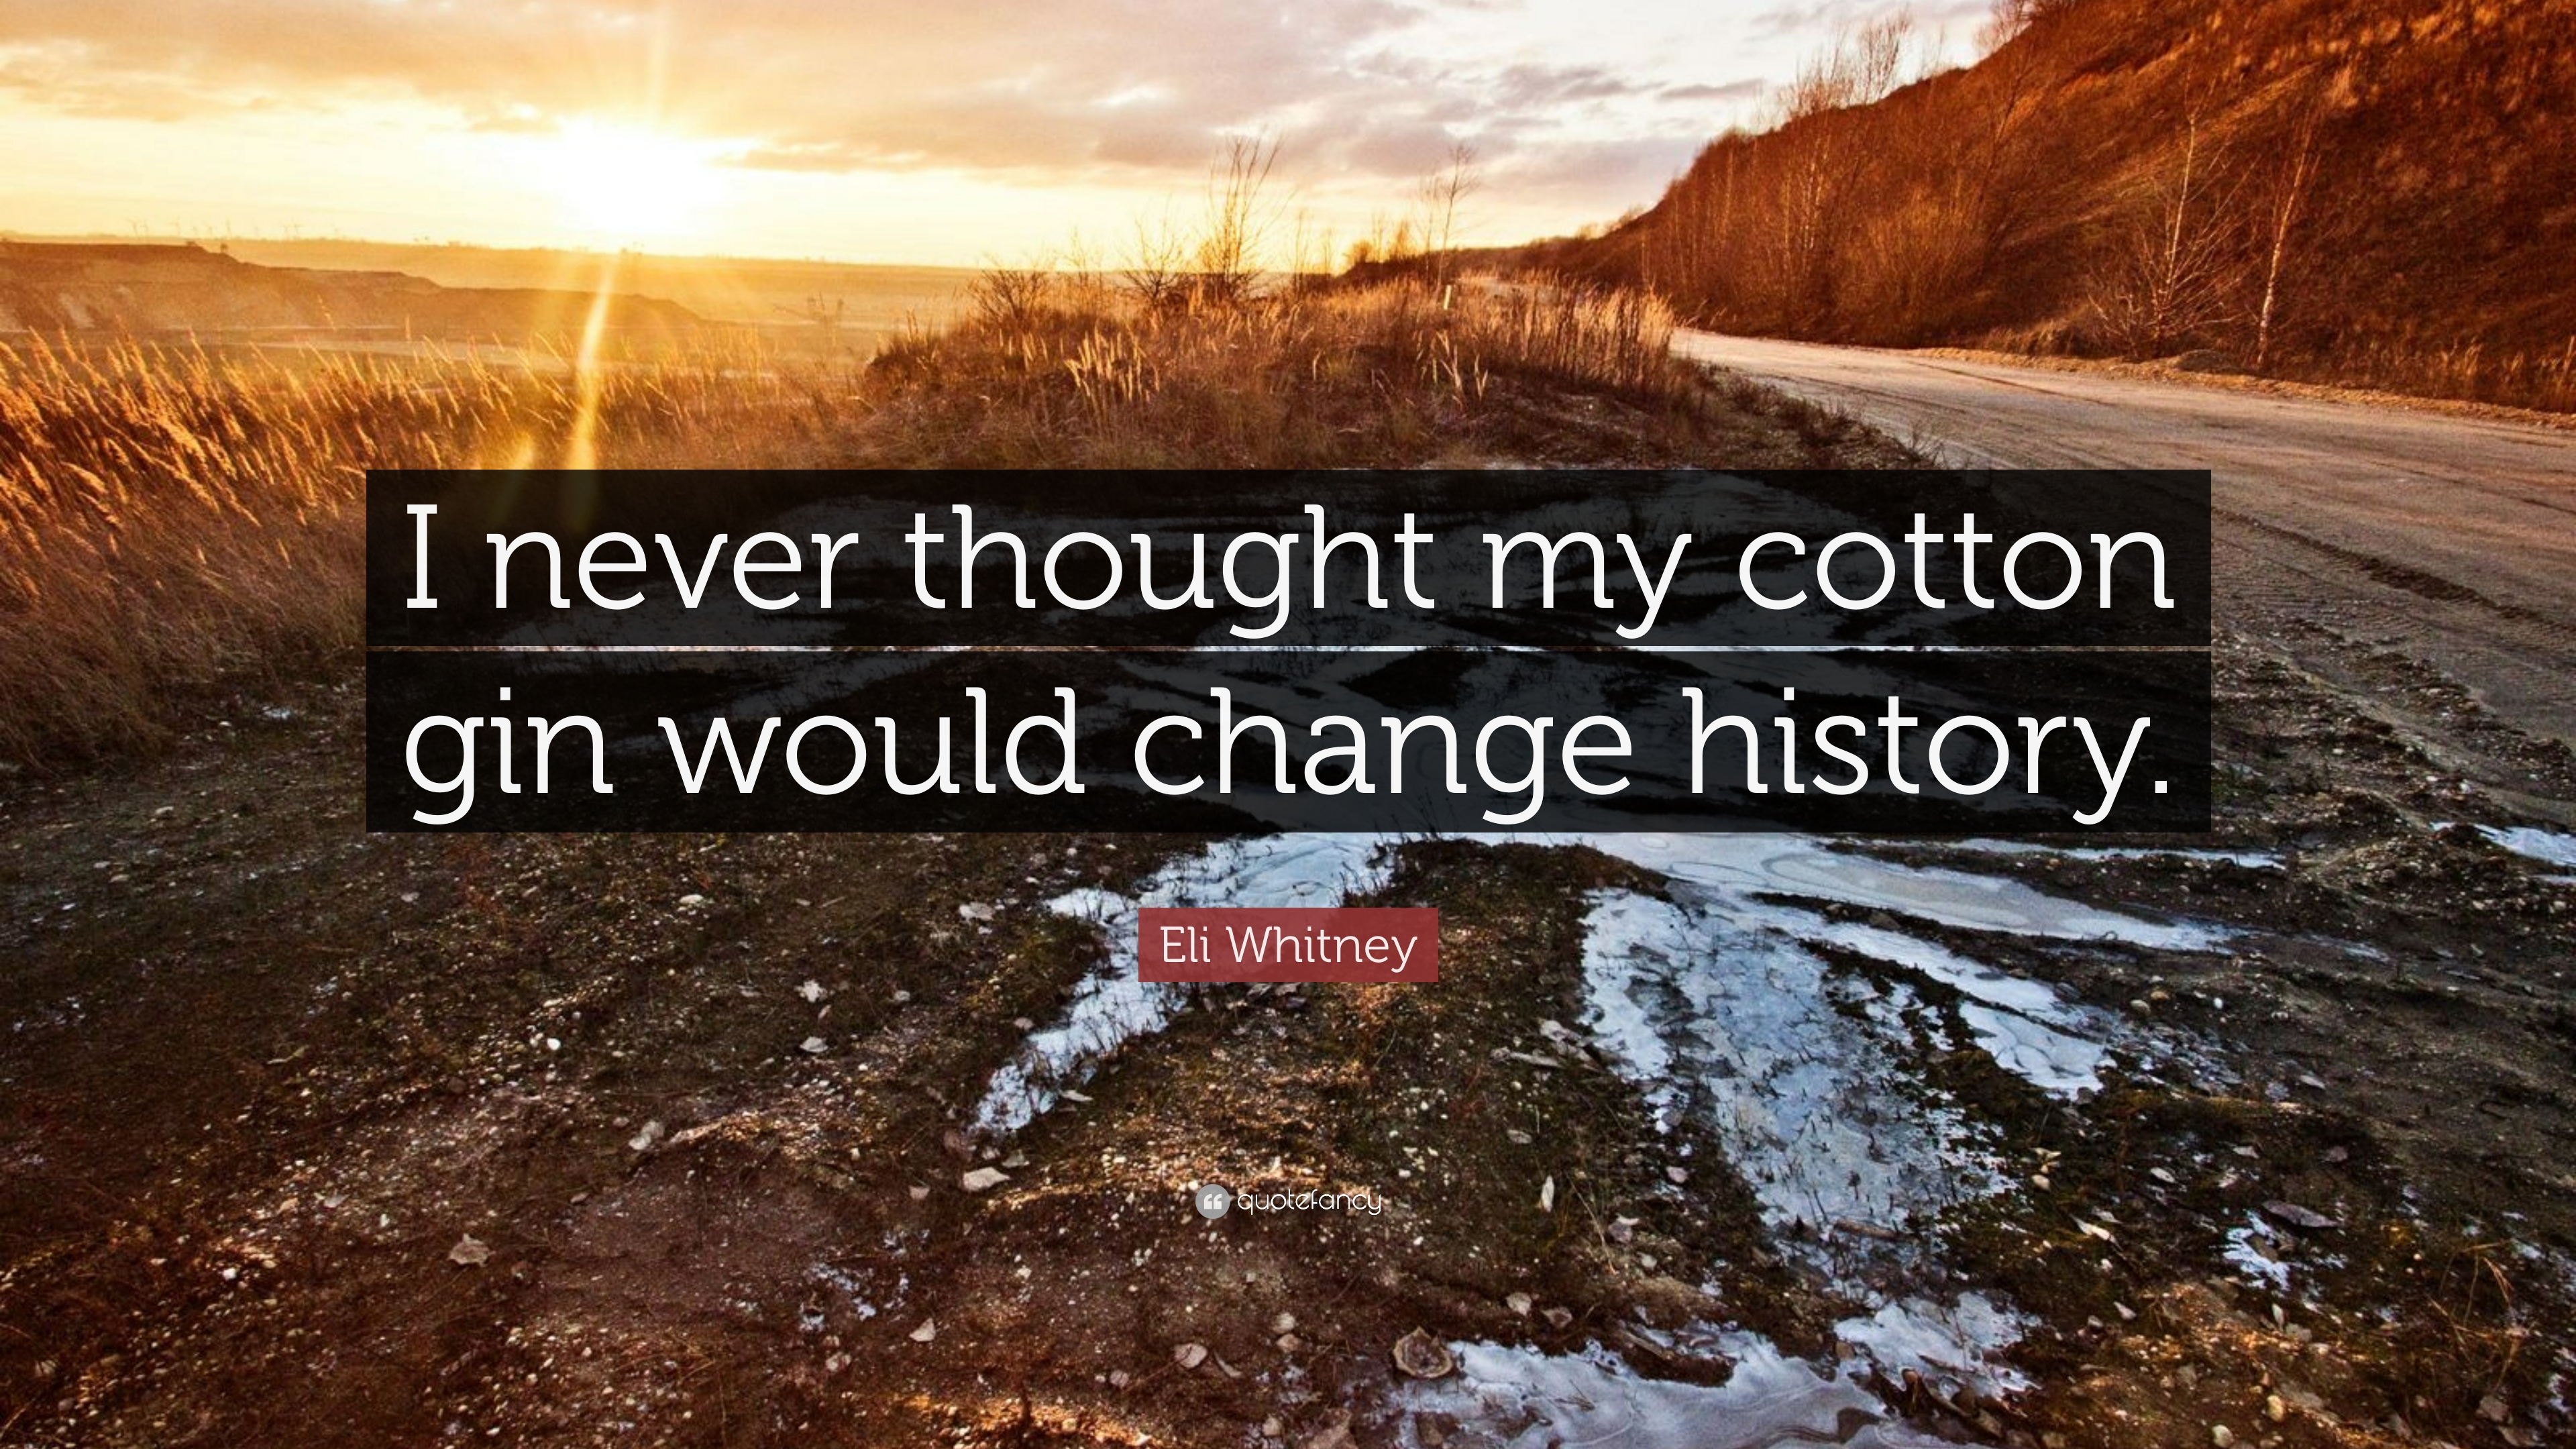 eli whitney quote i never thought my cotton gin would change